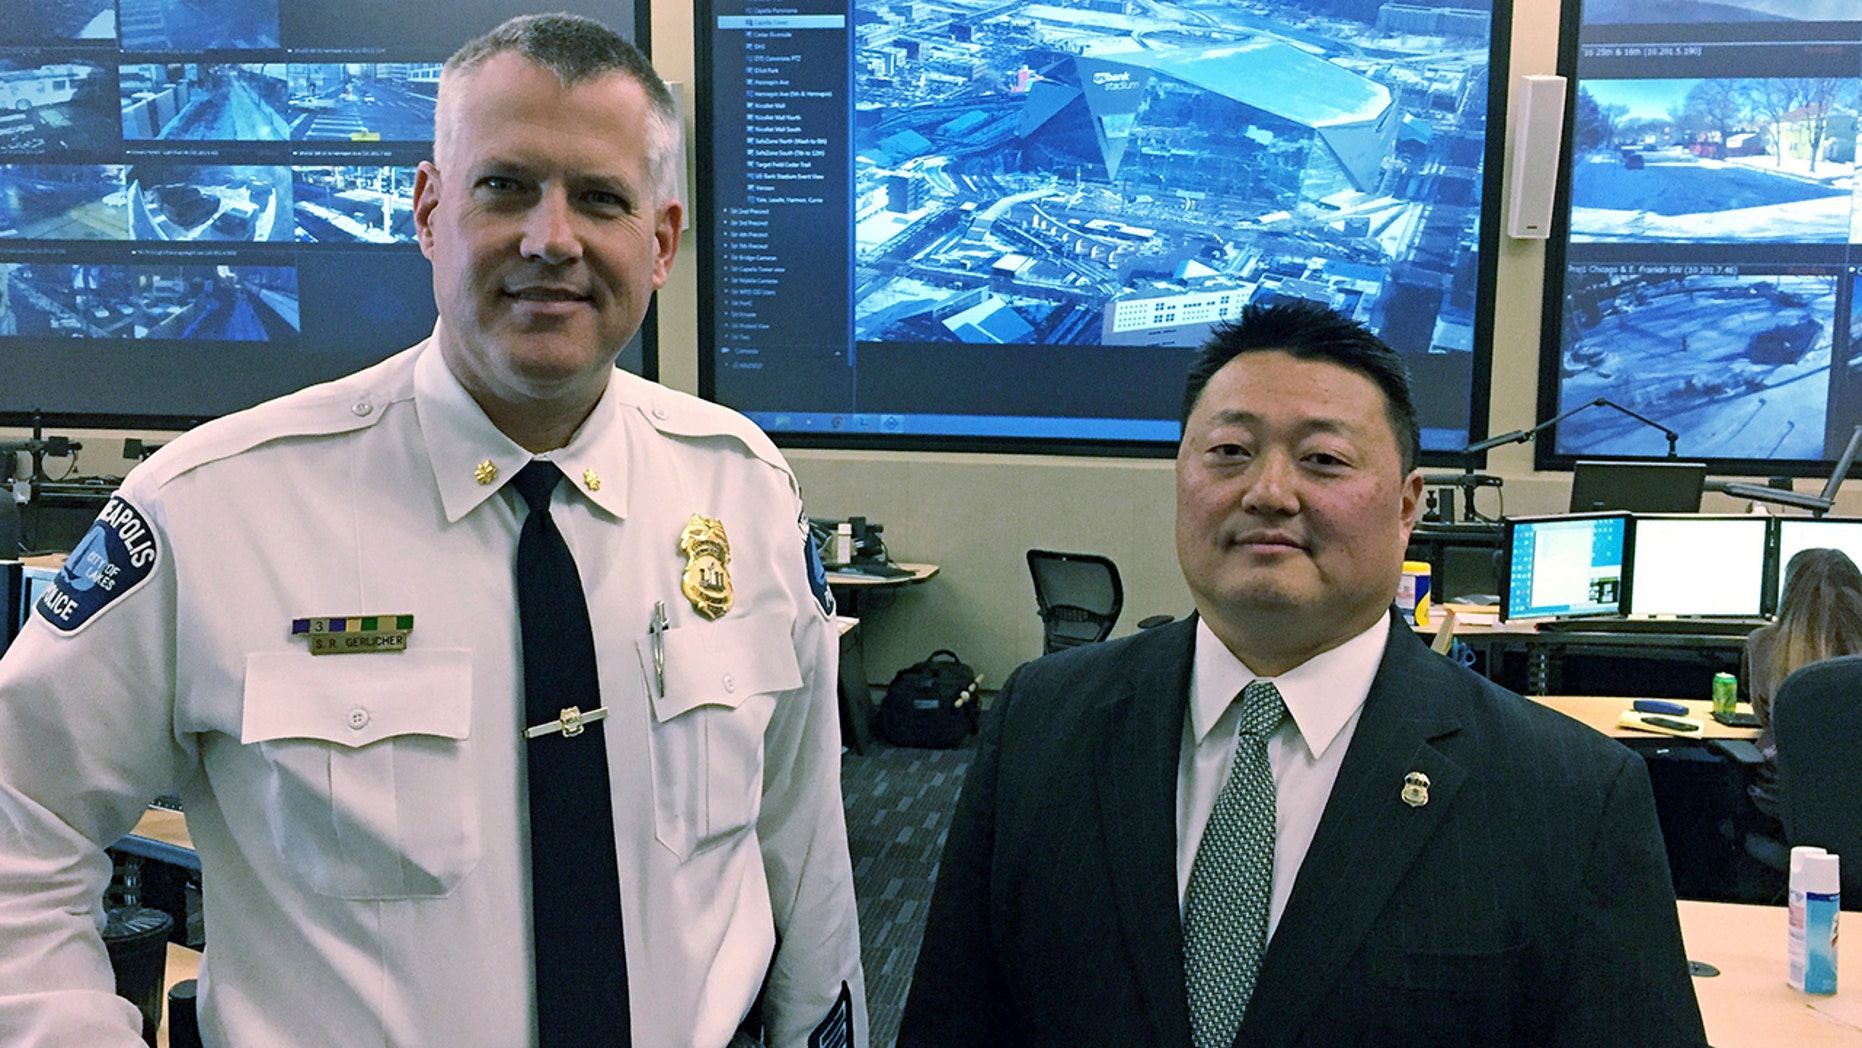 Minneapolis Police Commander Scott Gerlicher, left, and Homeland Security Investigations Special Agent in Charge Alex Khu, right, are heading up security preparations for the Super Bowl in Minnesota.